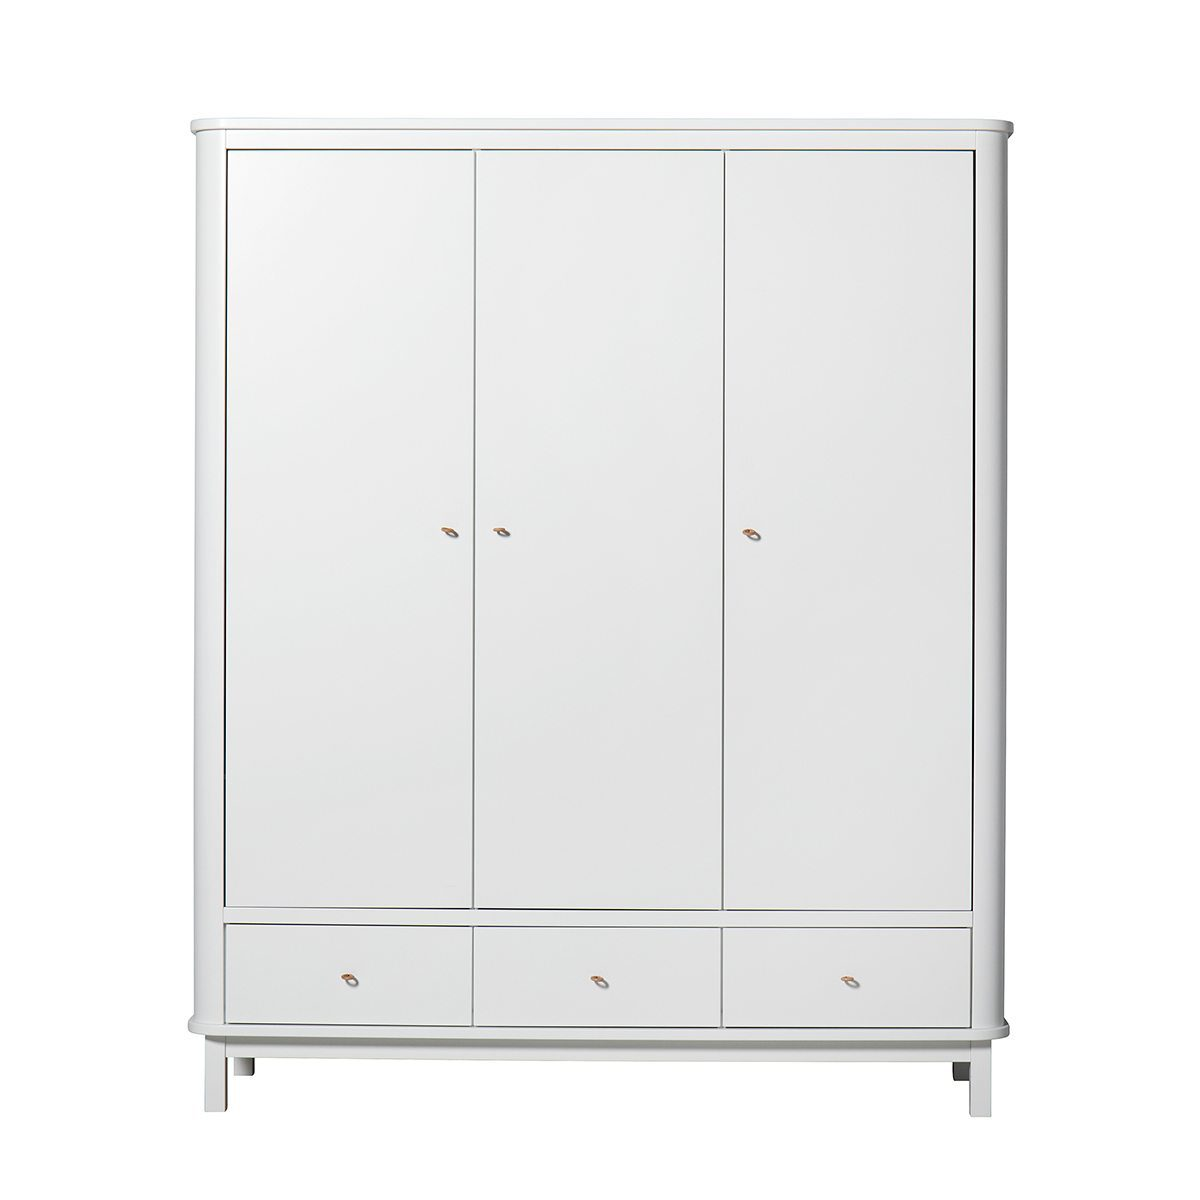 Oliver Furniture Kinderkledingkasten Wood white 3 deuren